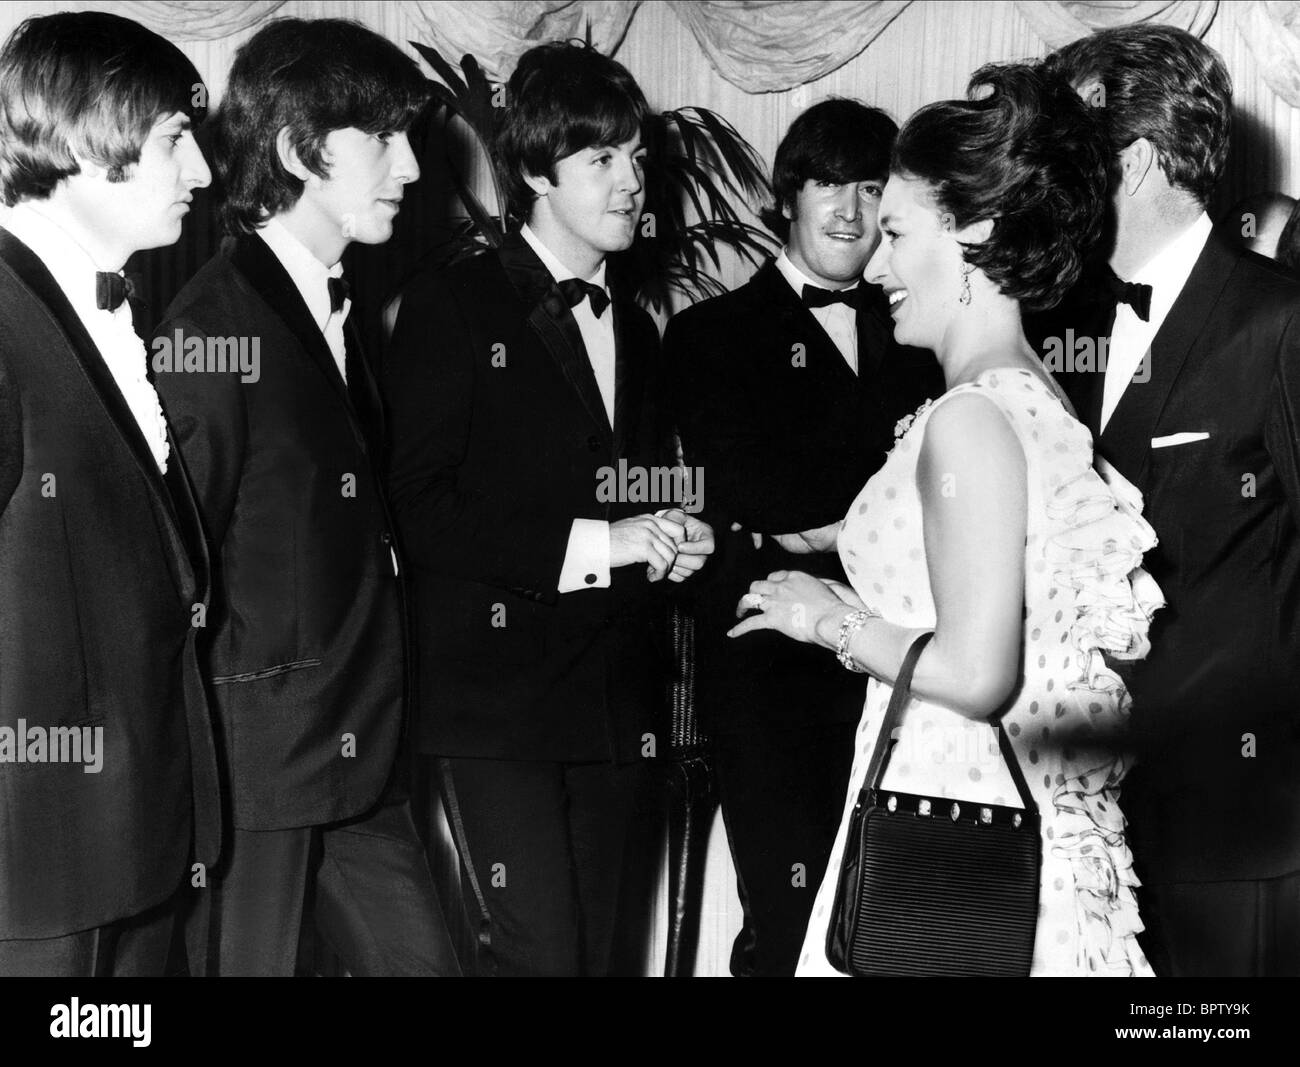 RINGO STARR GEORGE HARRISON PAUL MCCARTNEY JOHN LENNON PRINCESS MARGARET HELP PREMIERE 1965